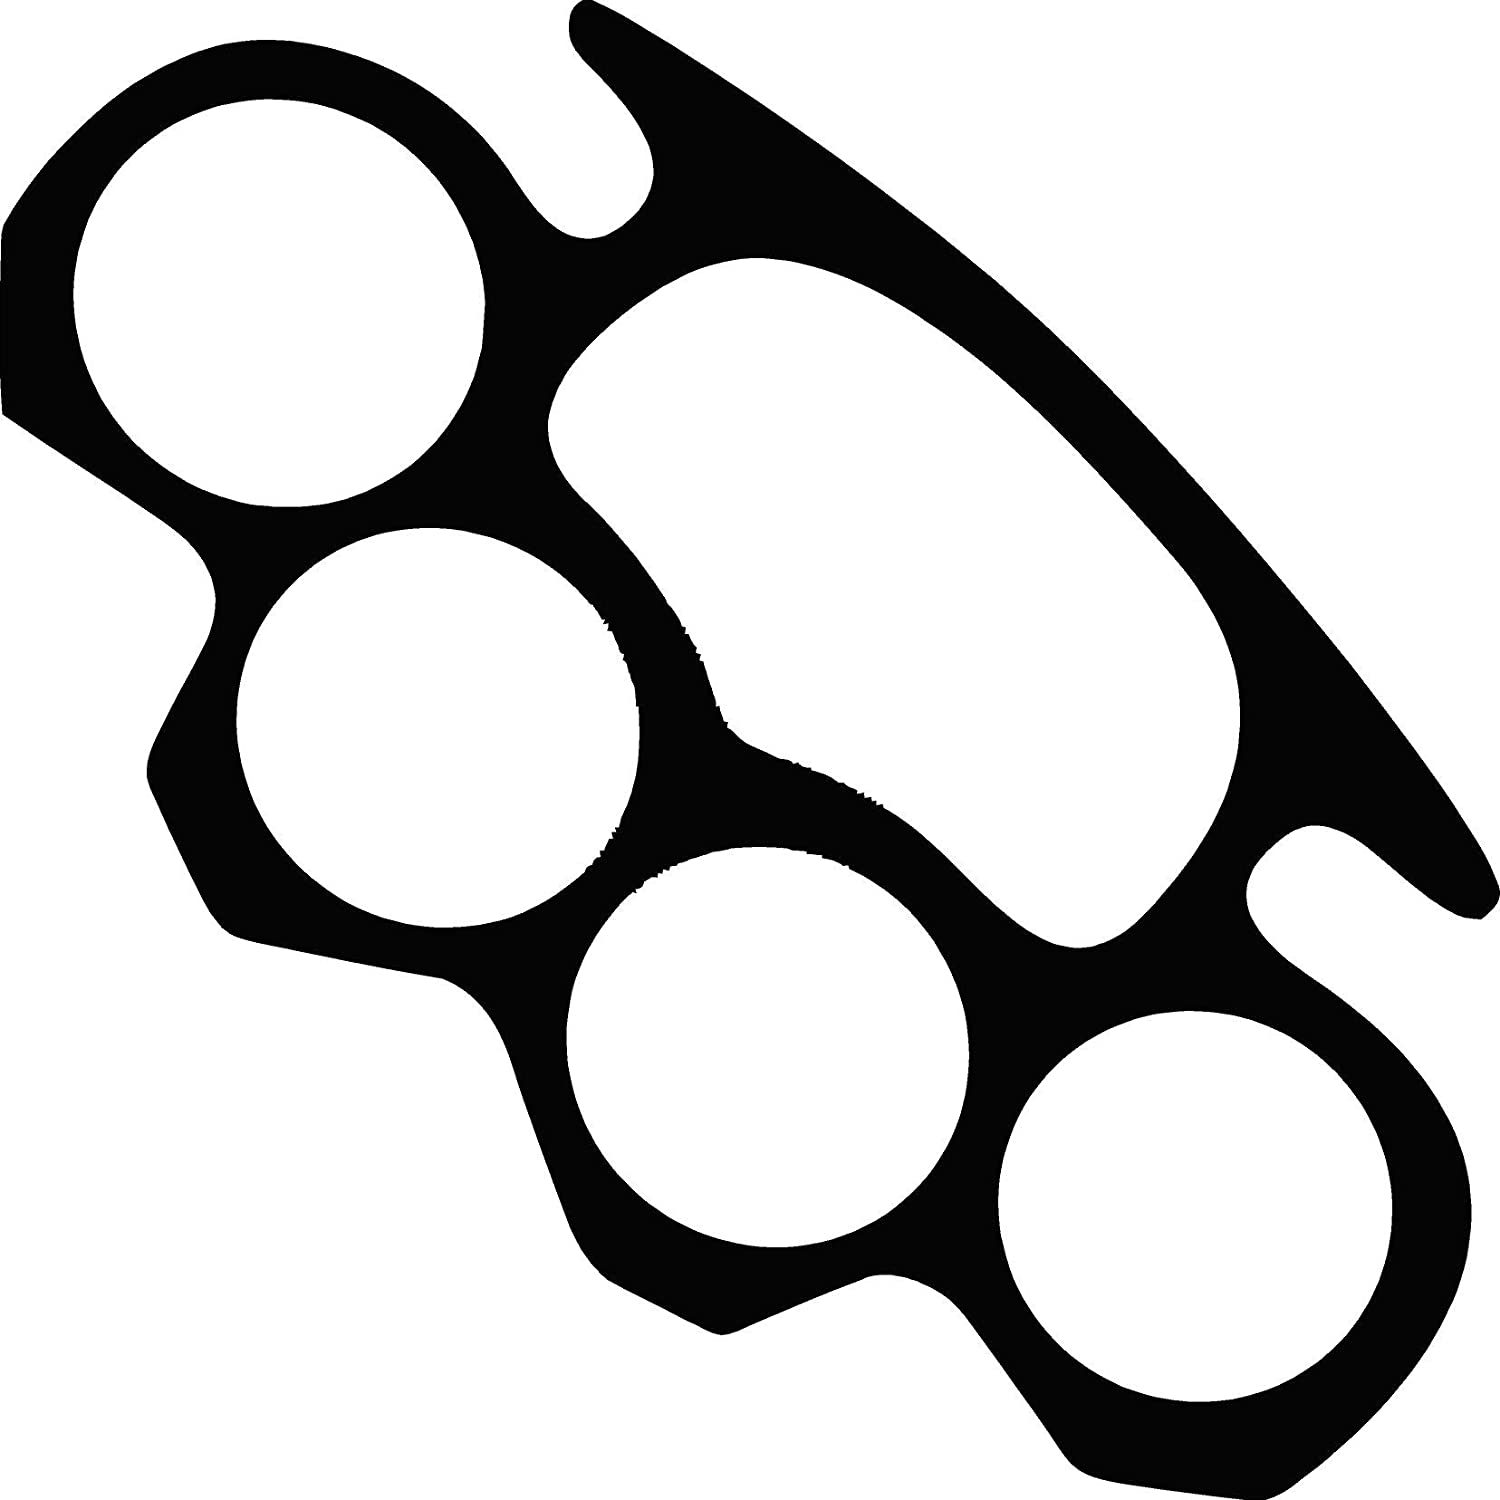 Brass knuckles outline pictures to pin on pinterest for Brass knuckles template